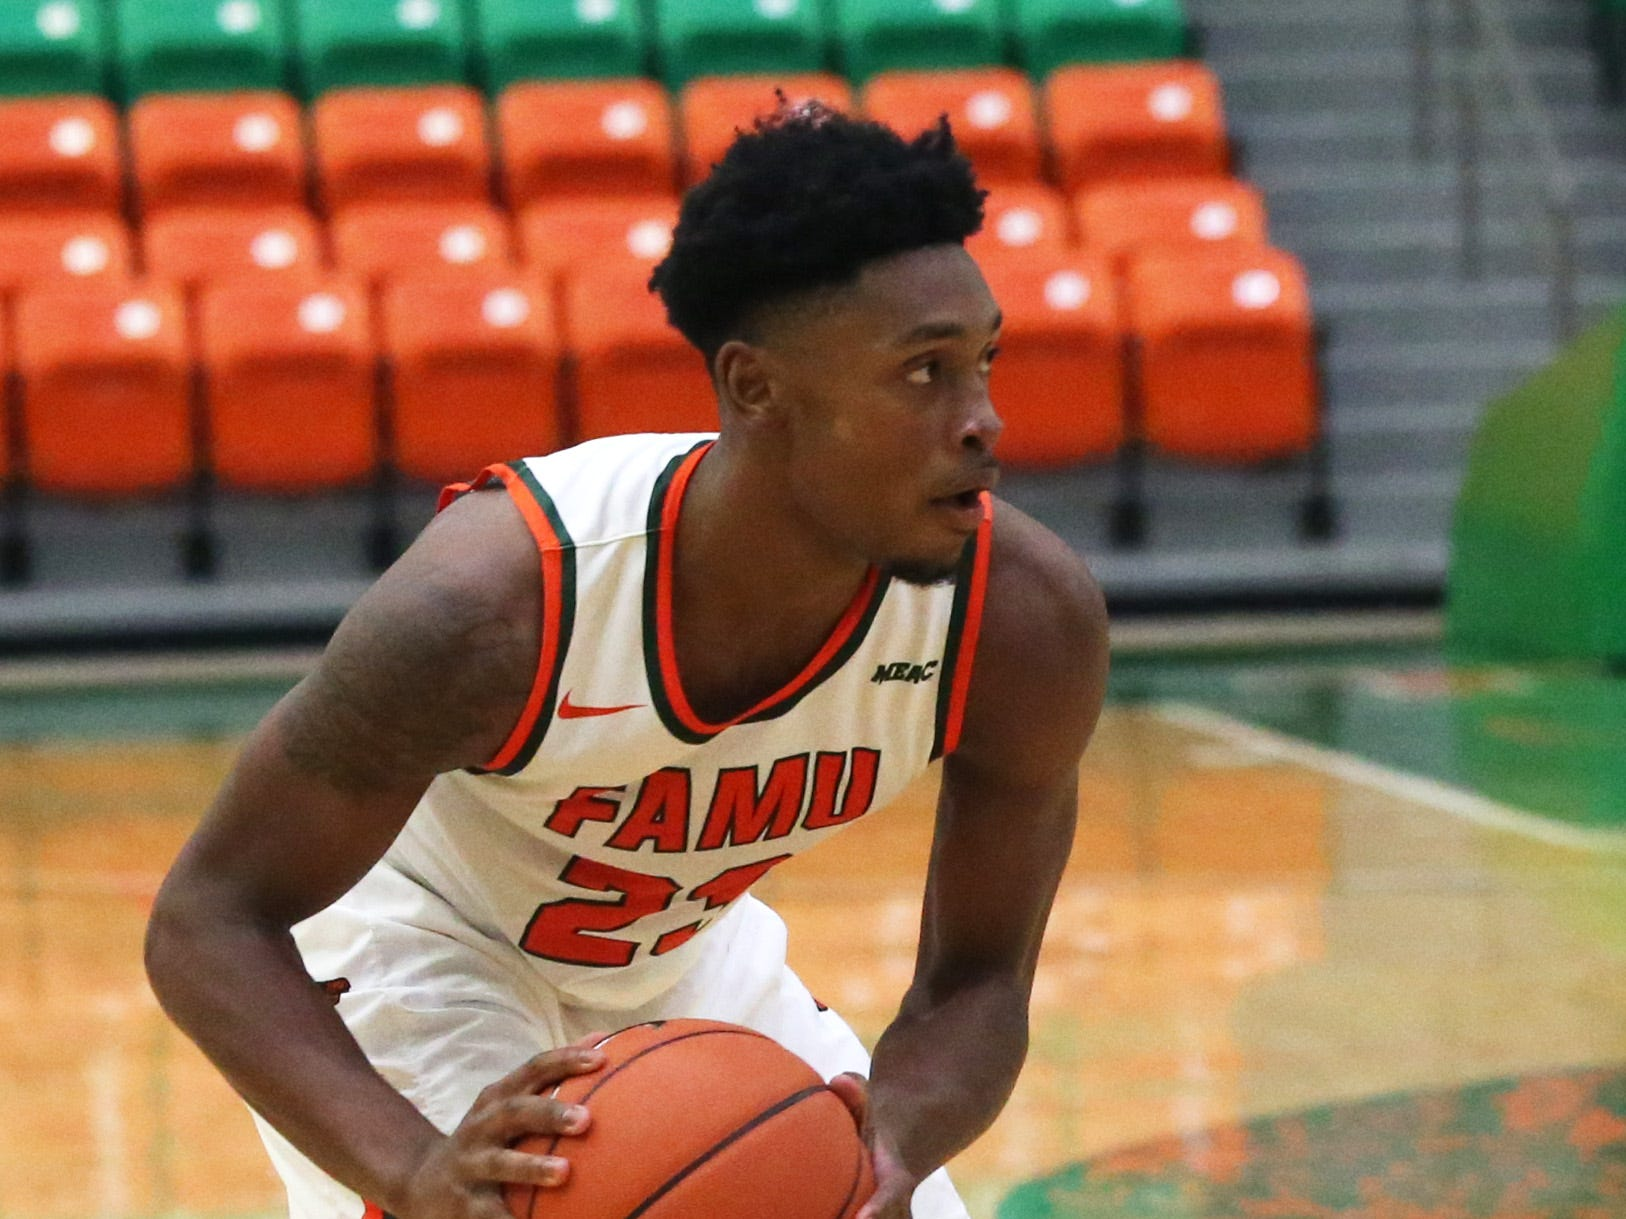 Florida A&M Rattlers forward Bryce Moragne (23) looks to pass as the FAMU Rattlers take on the Tuskegee Golden Tigers in their first home game of the season in the Lawson Center, Saturday, Nov. 10, 2018.